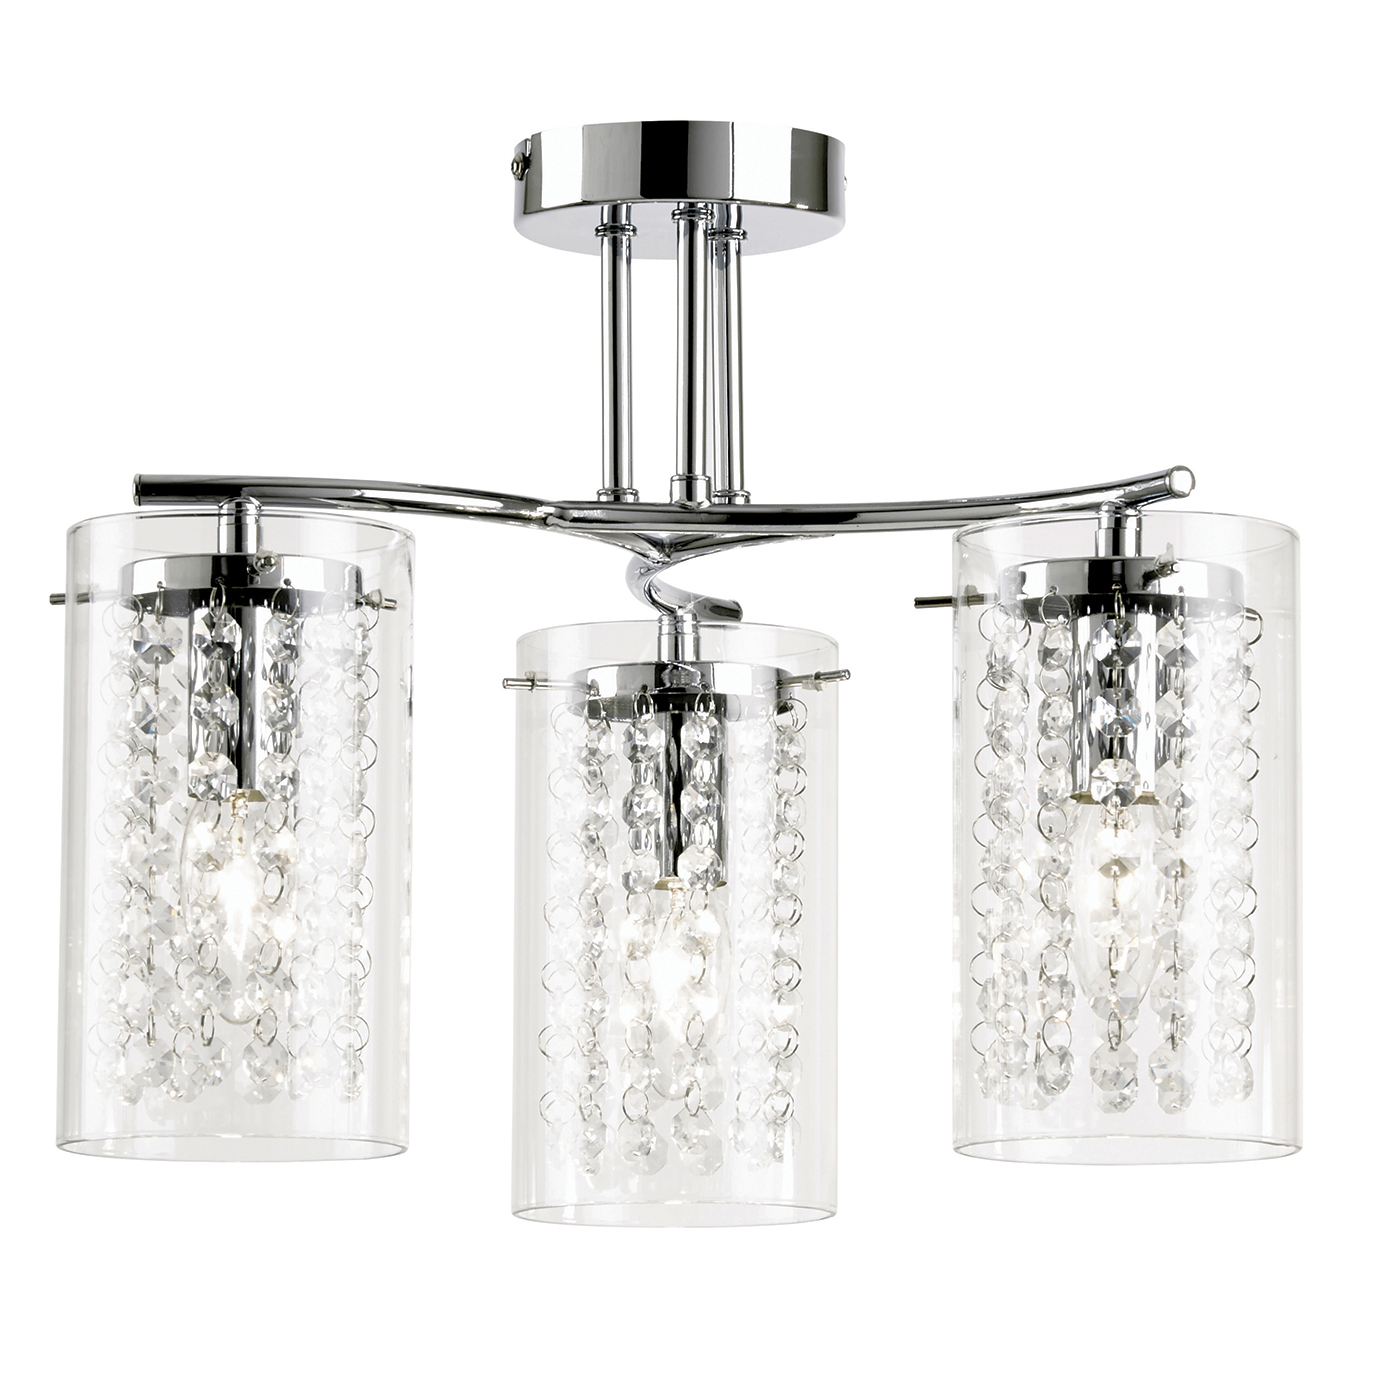 Endon Alda ceiling light 3x 40W Chrome effect plate & clear glass drops Thumbnail 1